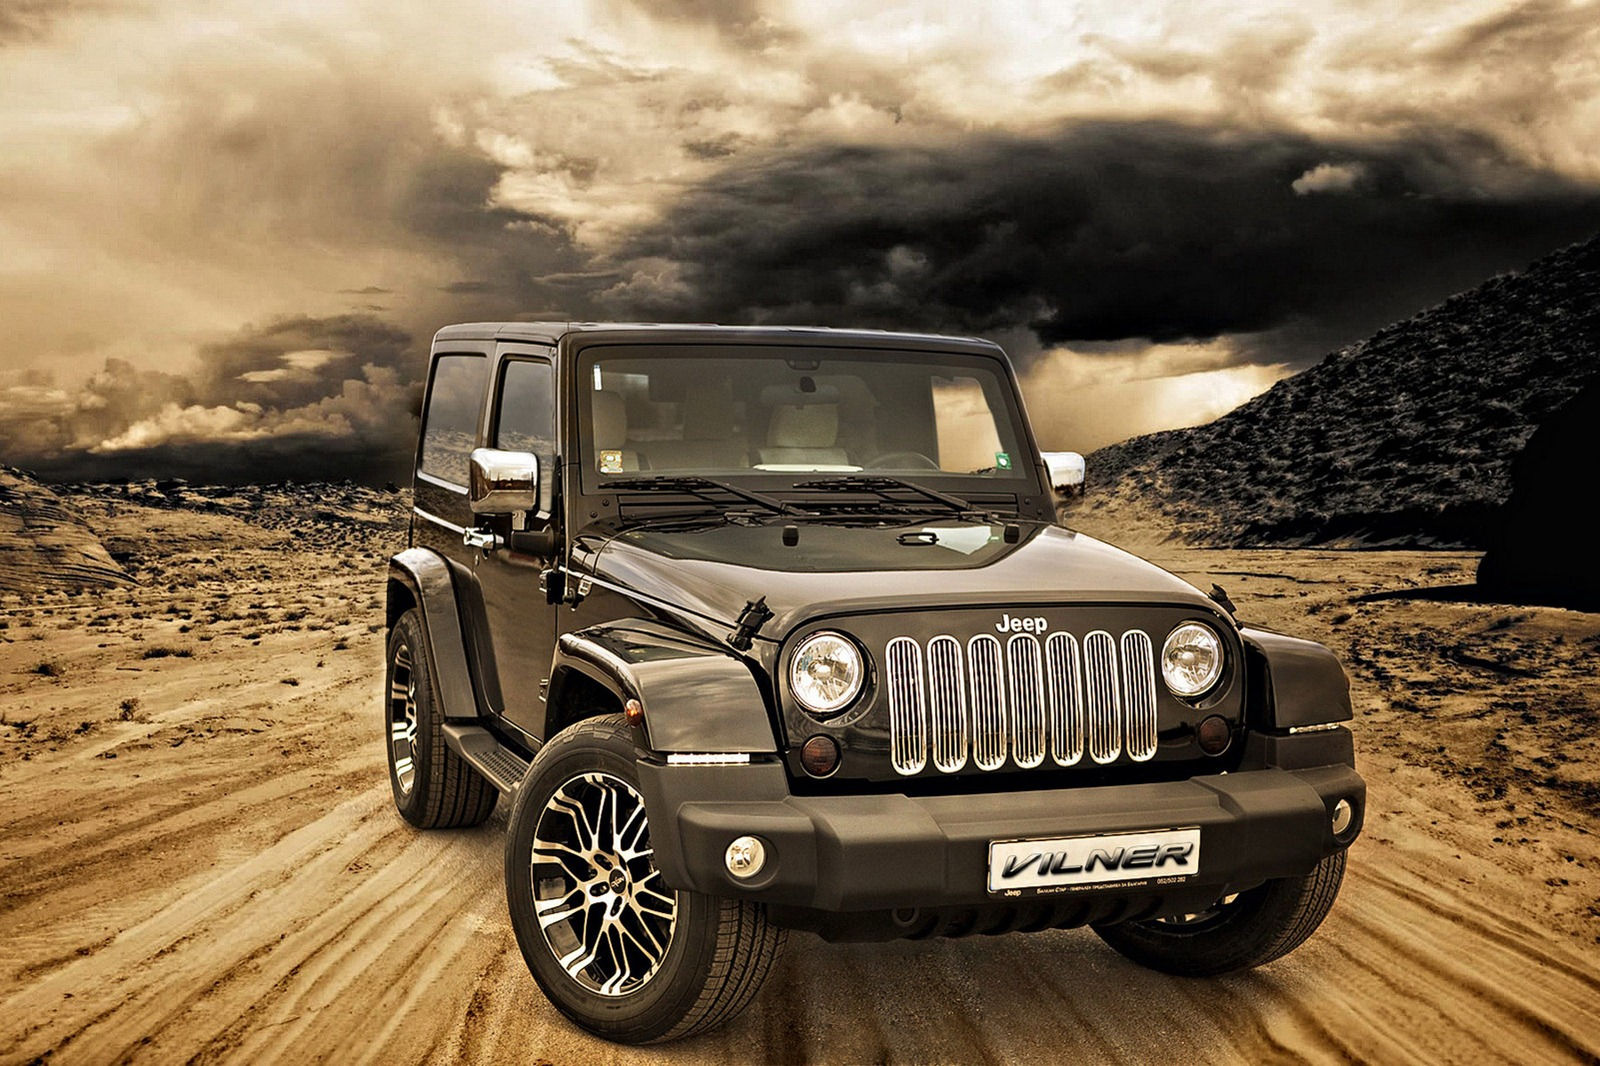 their attention to the American off-road legend, the Jeep Wrangler